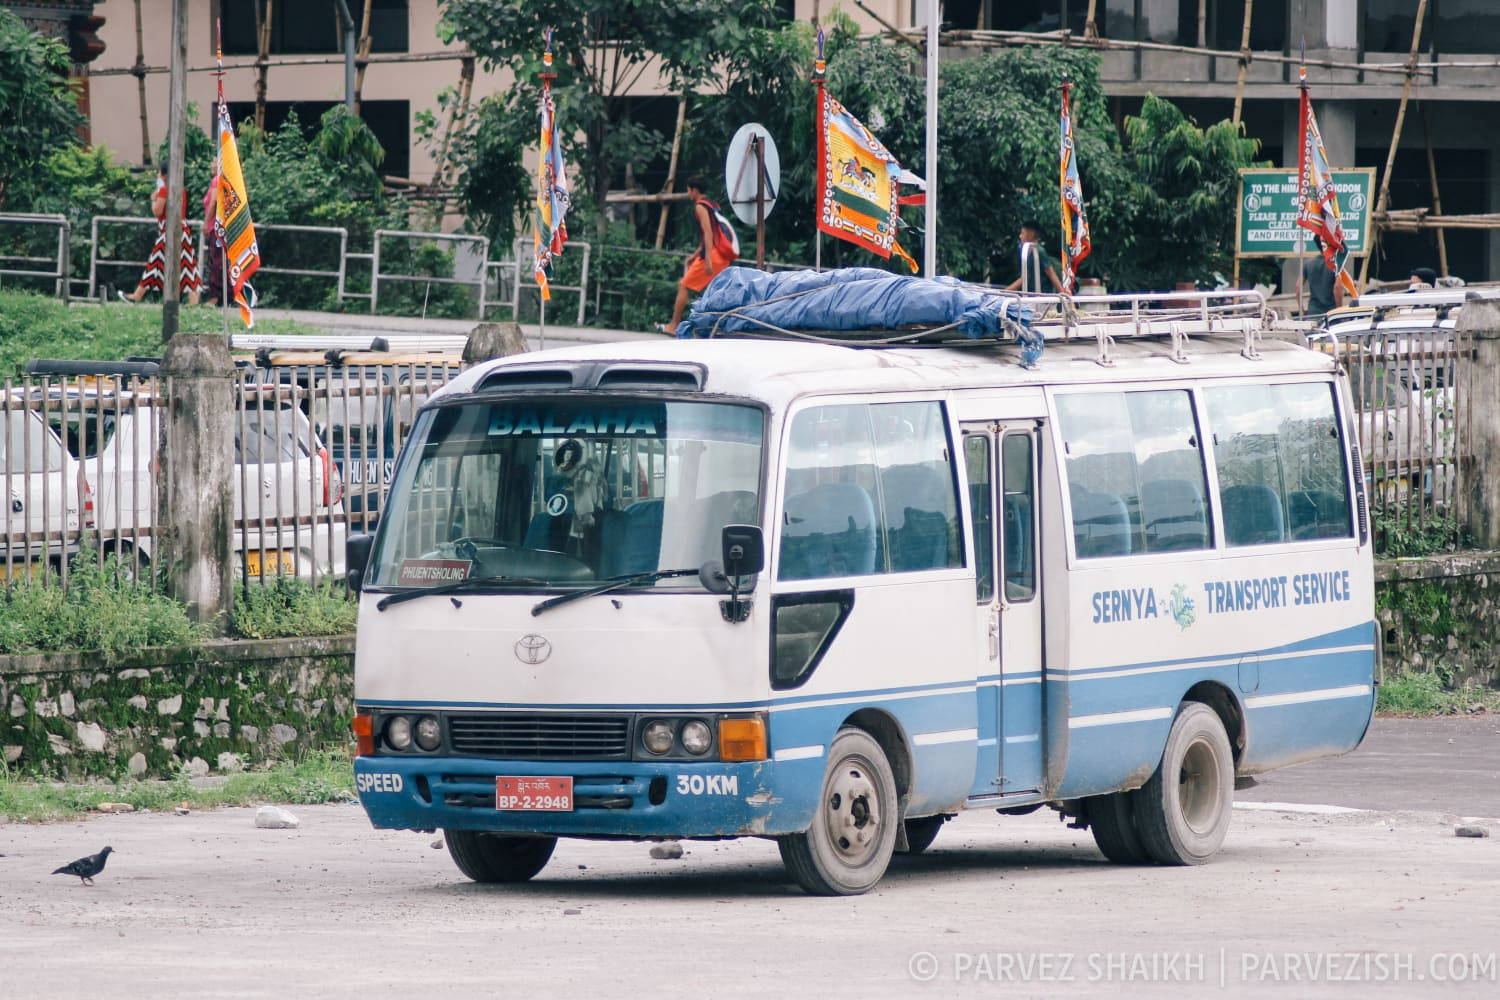 A Typical Bus in Phuentsholing, Bhutan